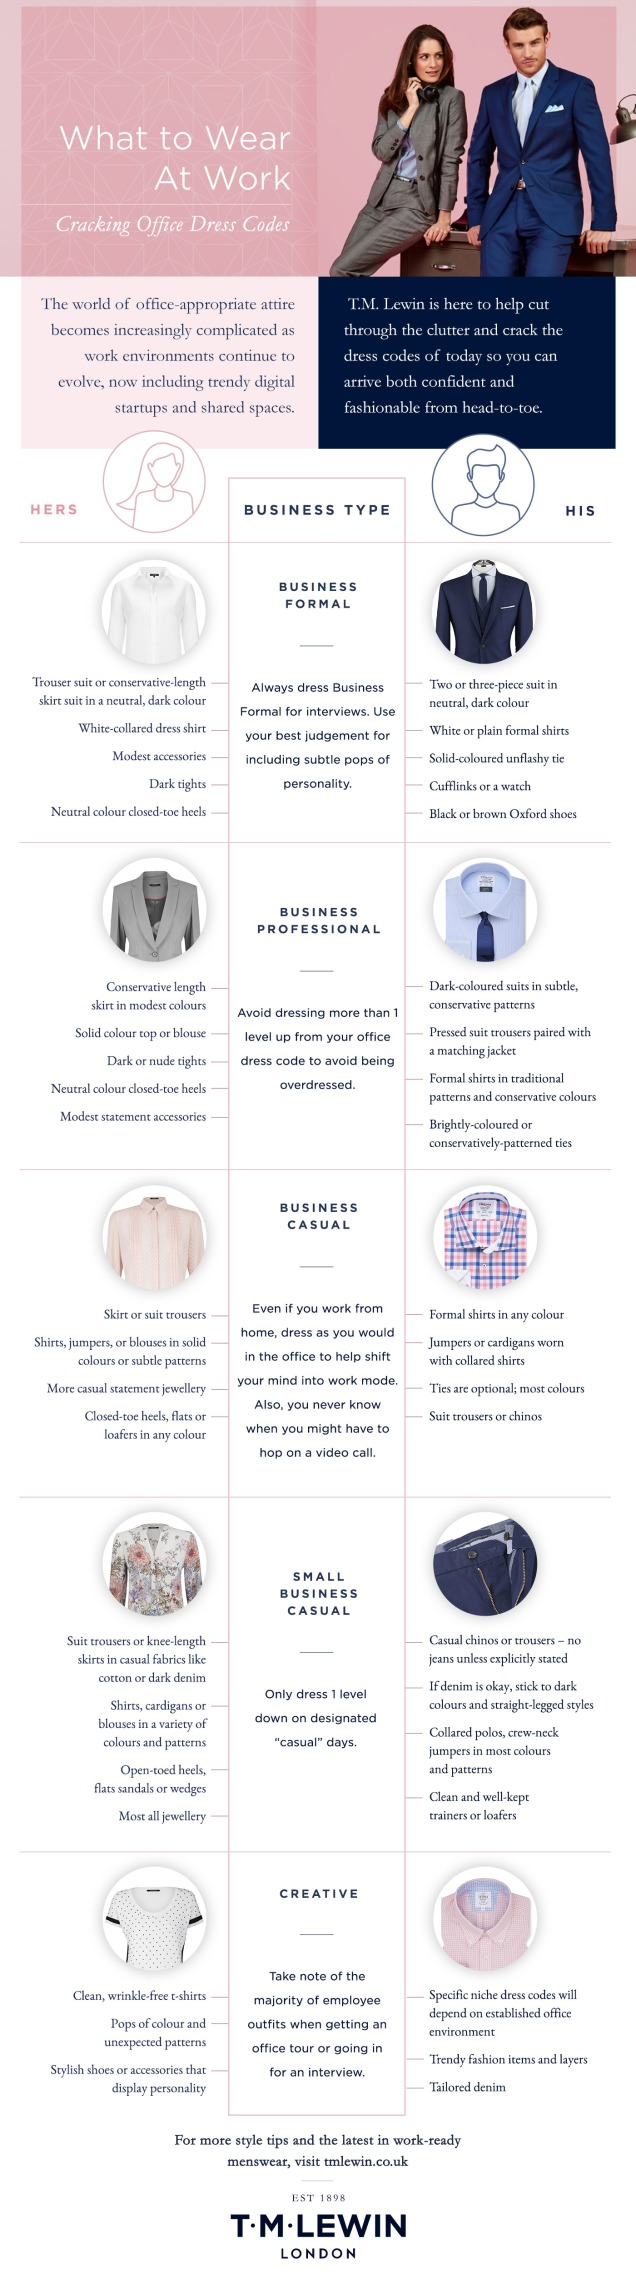 What to Wear to Work infographic by T.M. Lewin